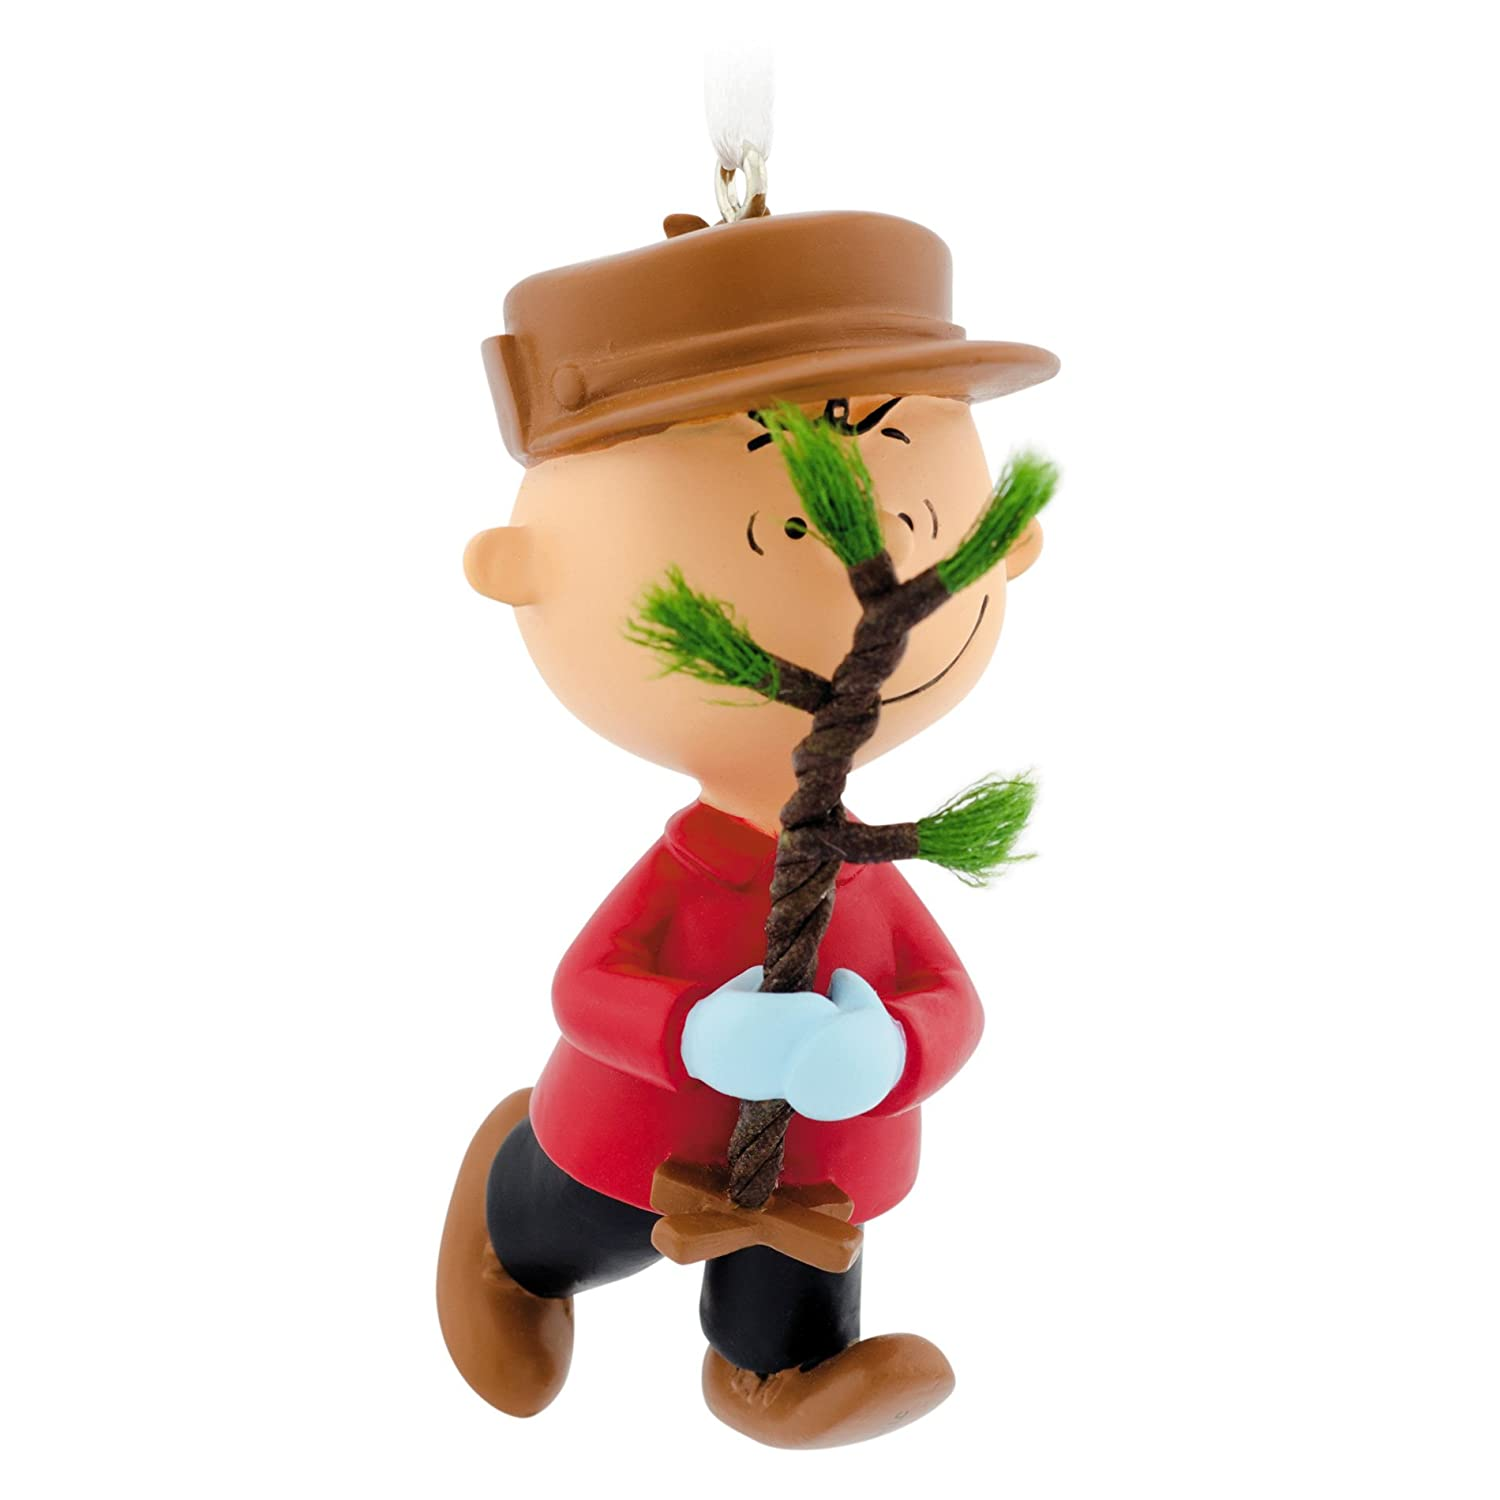 Amazoncom Hallmark Peanuts Charlie Brown with Tree Christmas